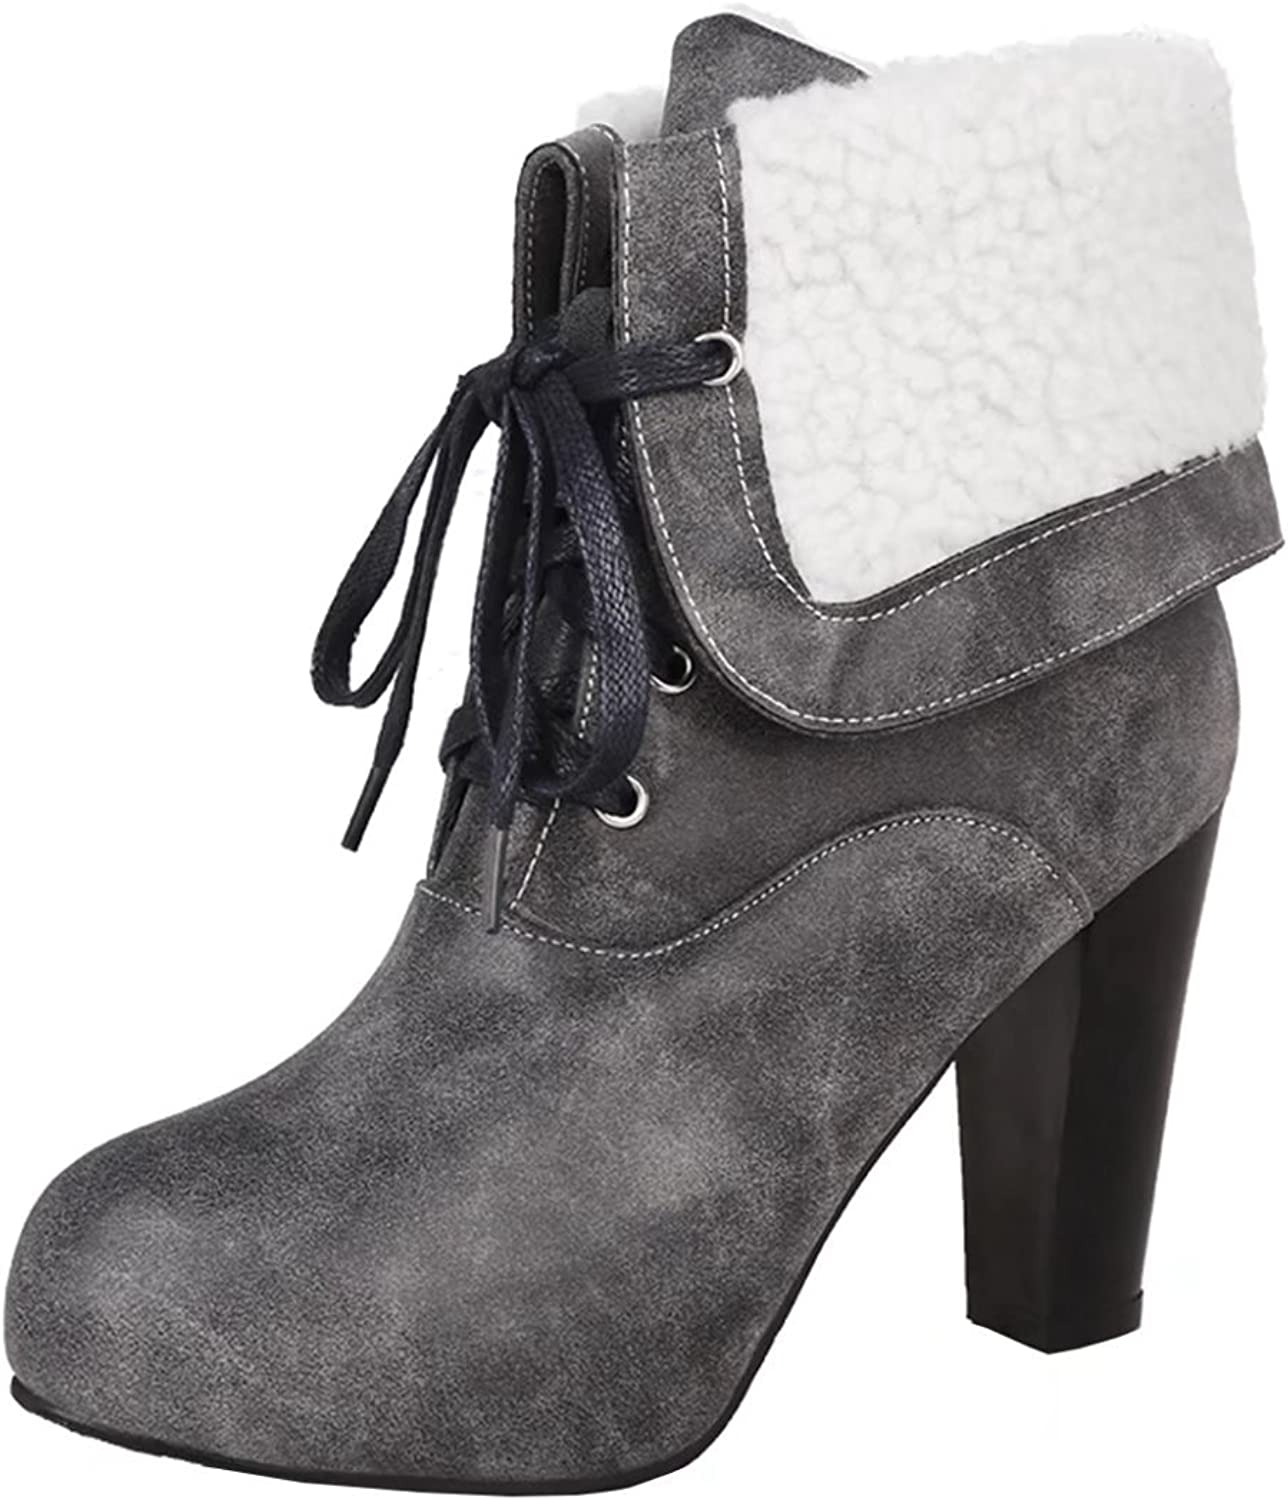 AIYOUMEI Women's Lace-up Thick Heel Bootie Autumn Winter Round Toe Ankle Boots